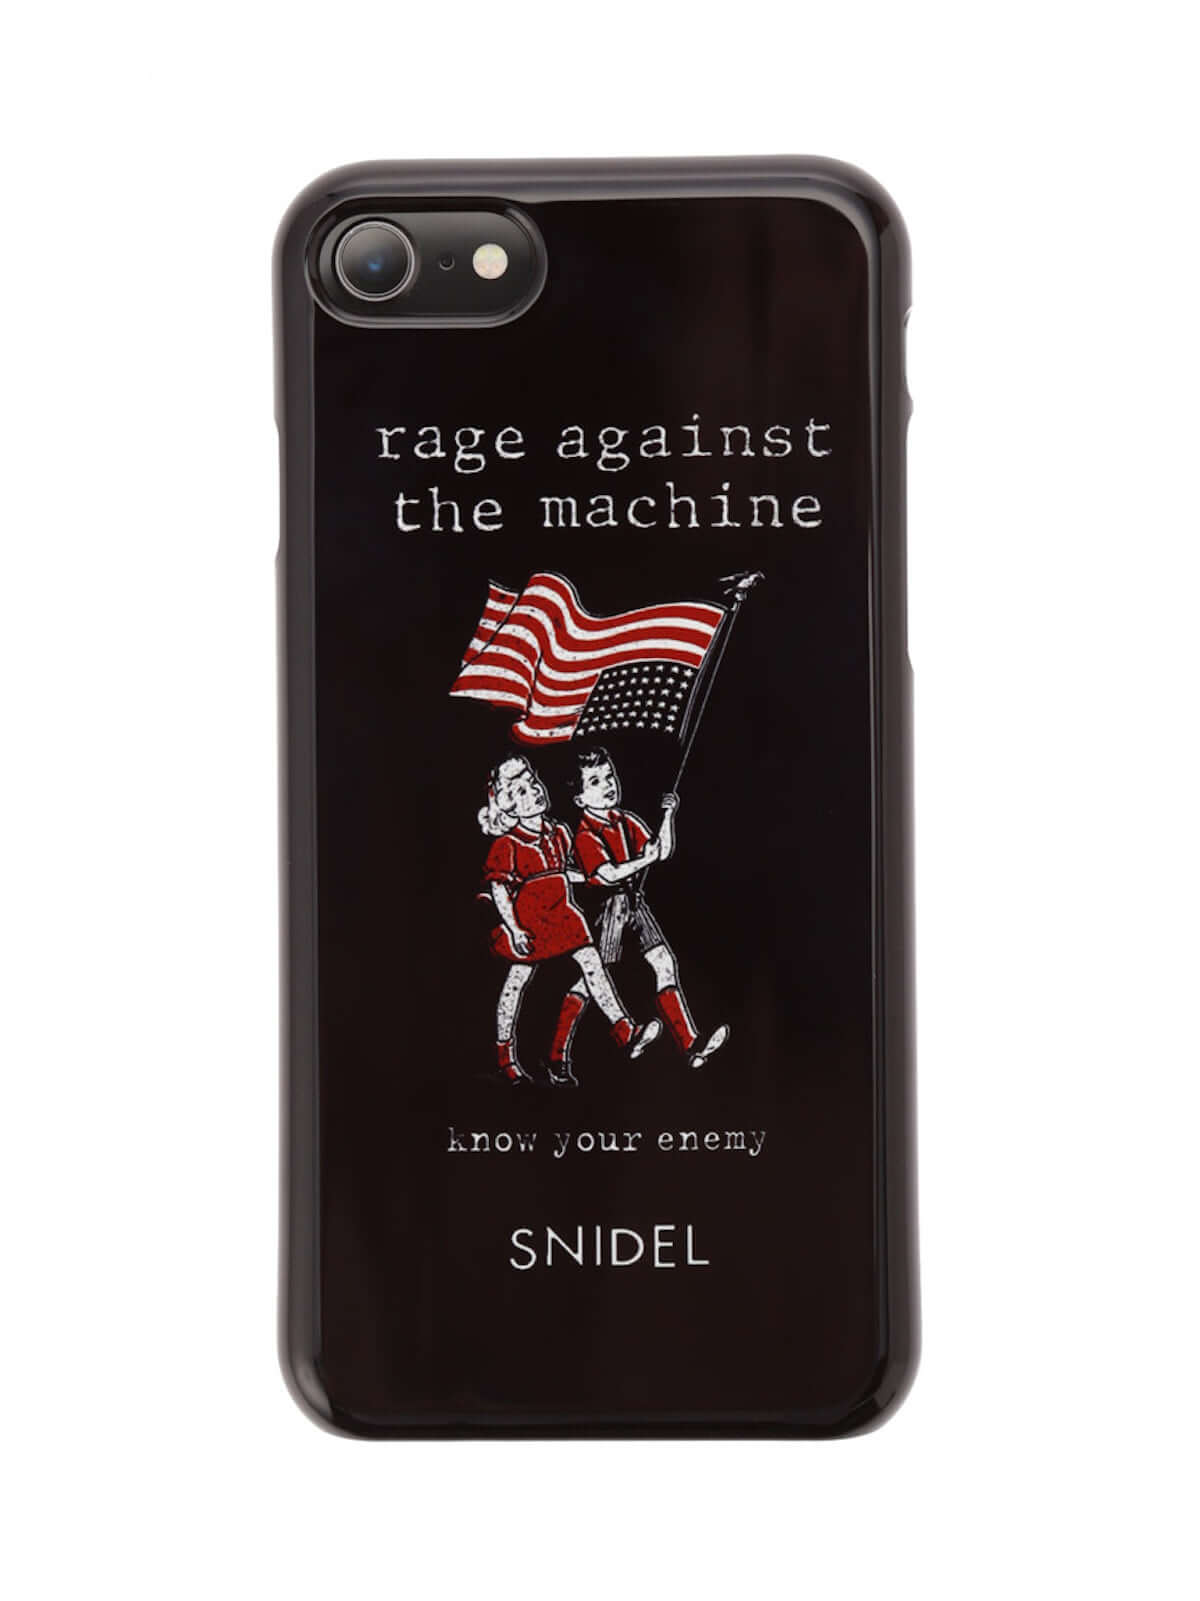 SNIDEL × Rage Against the Machineまさかのコラボが実現!? fashion181116_snidel-rage_6-1200x1601